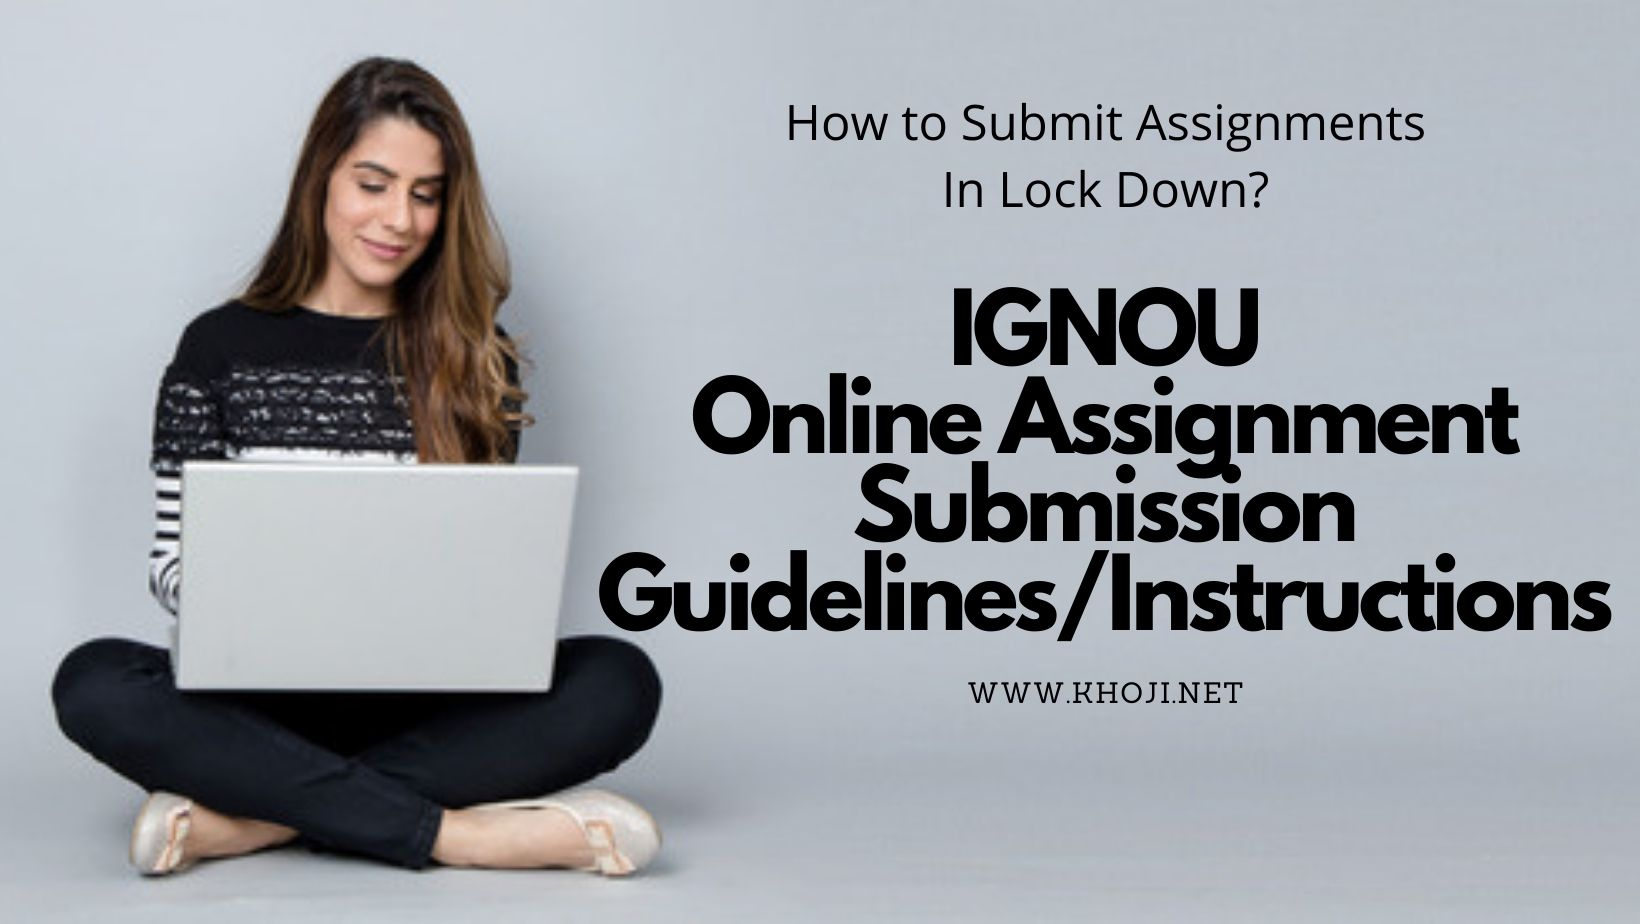 IGNOU Online Assignment Submission Guidelines Instructions 2021